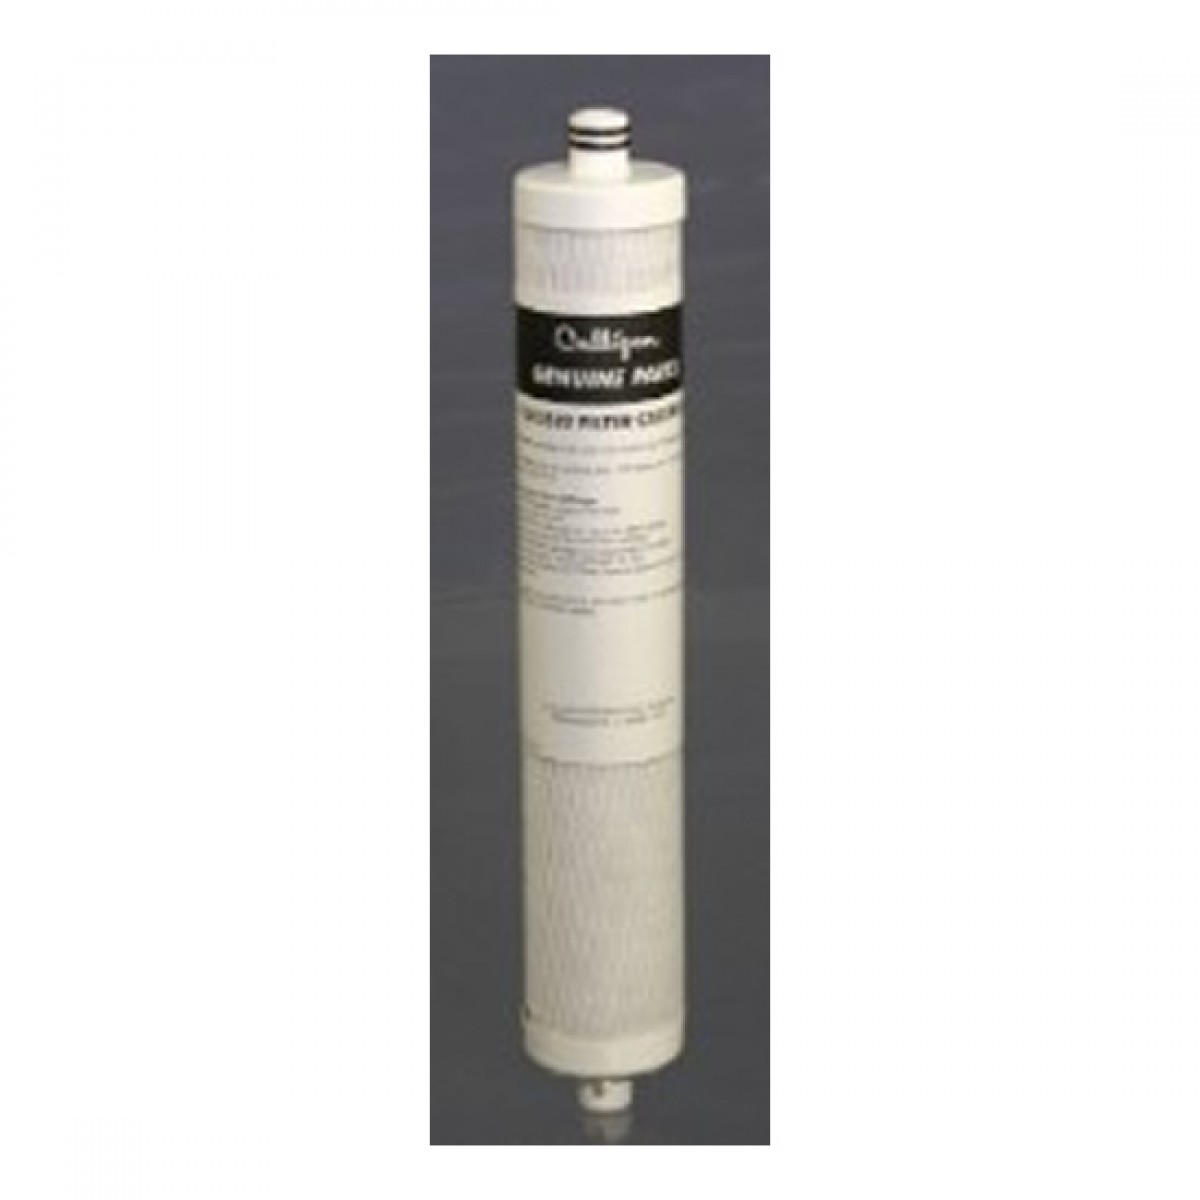 culligan water filter replacement instructions